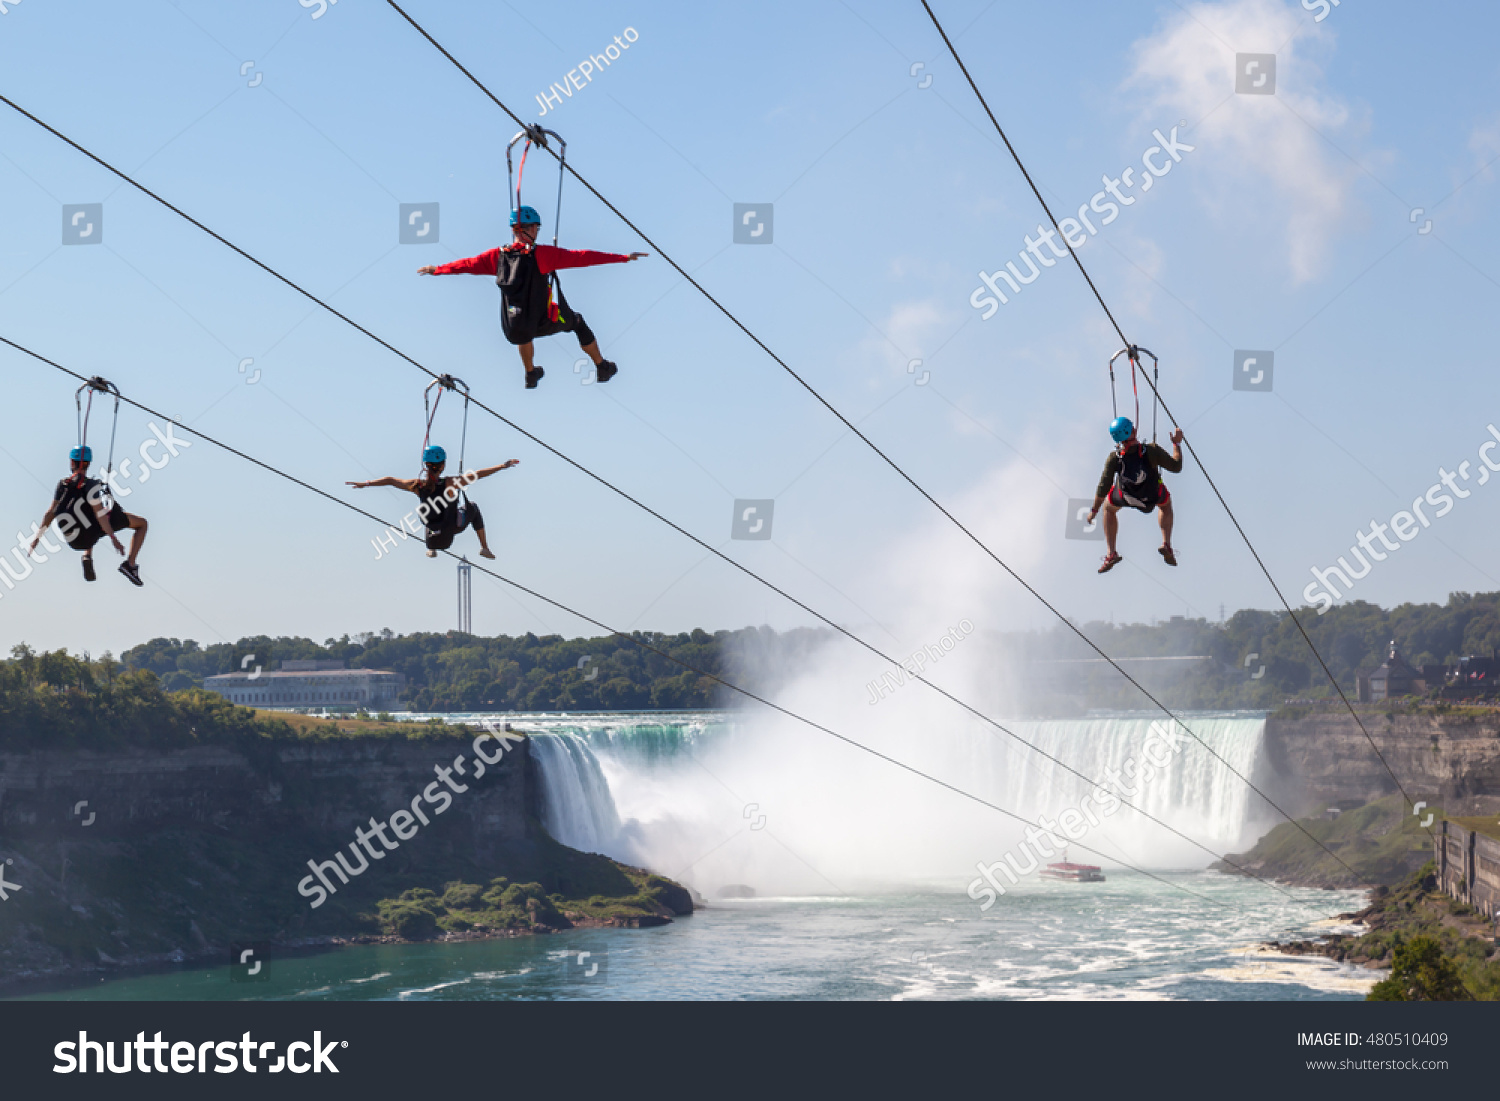 NIAGARA FALLS ONTARIO CANADA SEPTEMBER 4 Four people taking zipline ride at Niagara Falls in summer on Sep 4 2016 Ontario CanadaNew zipline in Niagara Parks opened in the summer of 2016